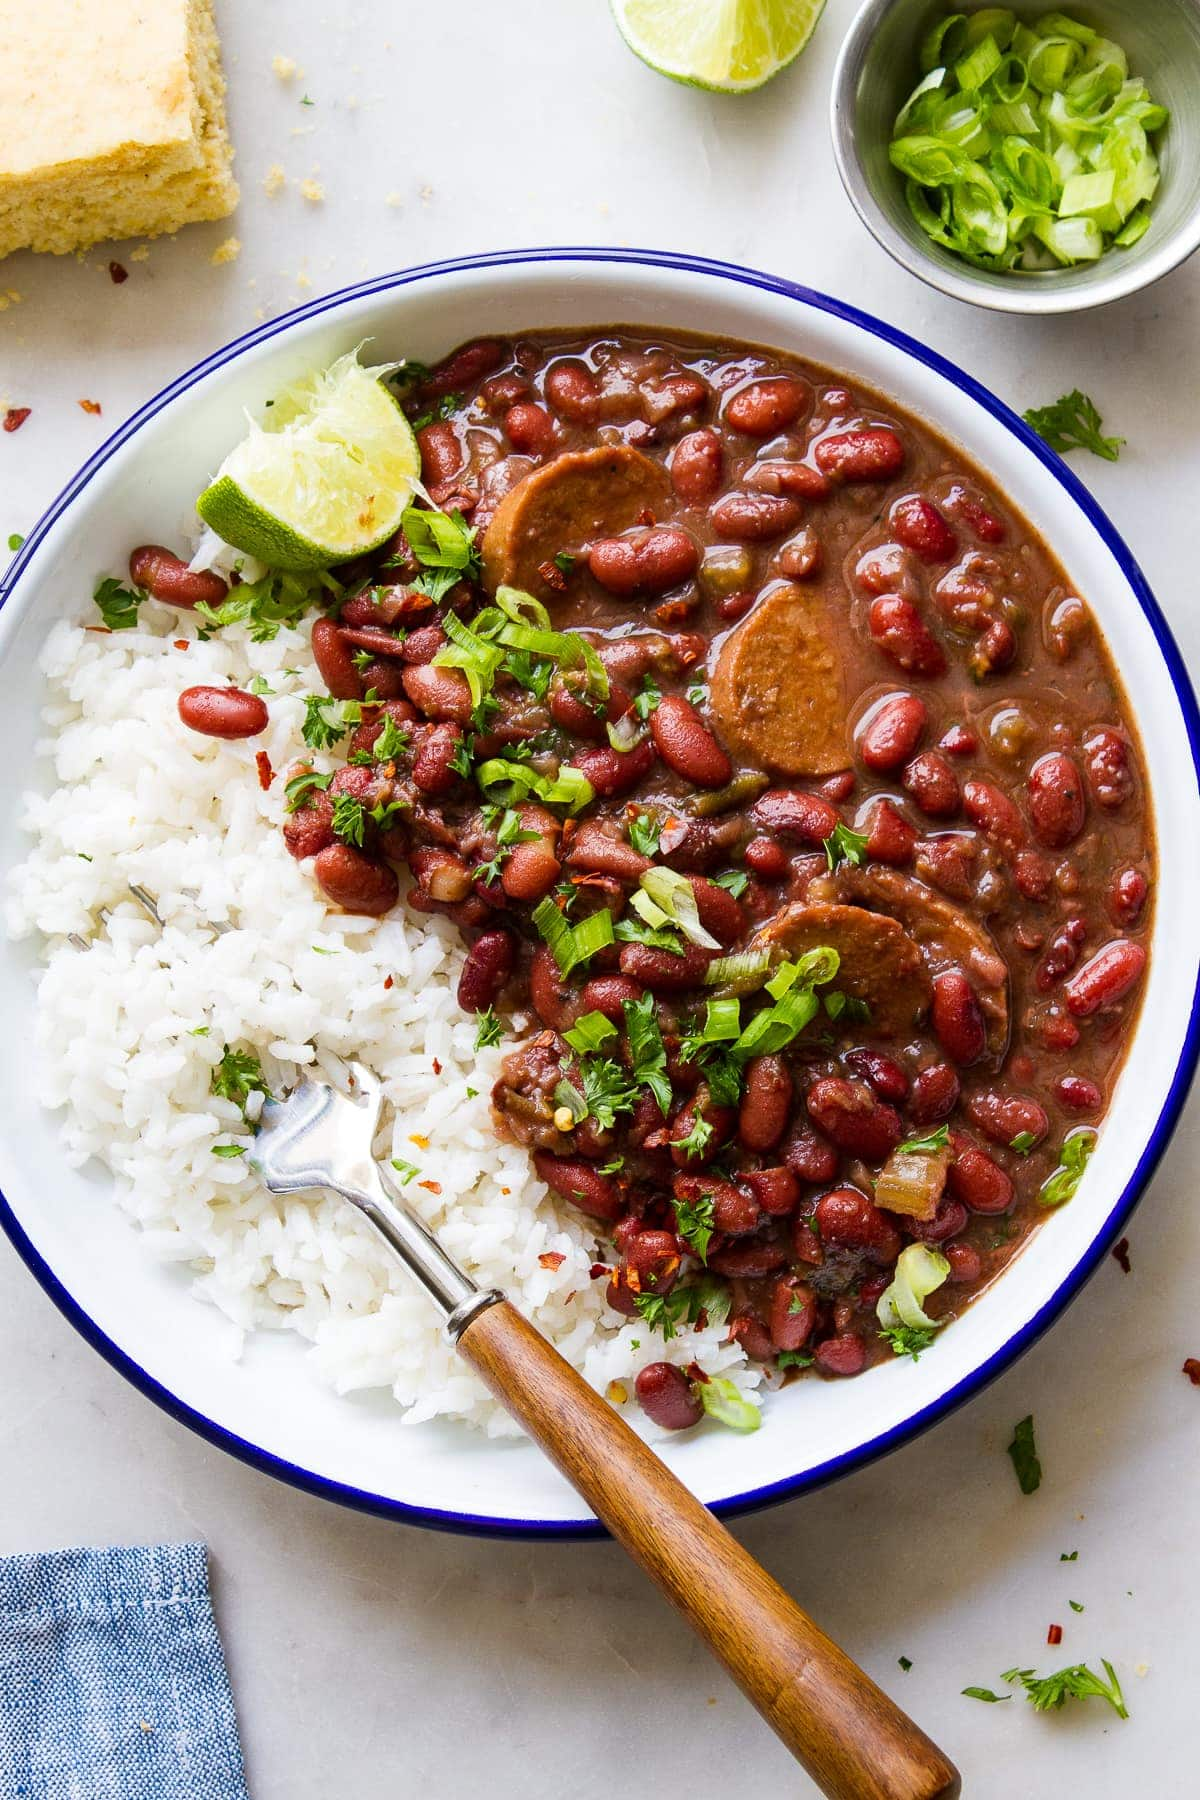 Instant Pot Red Beans And Rice Vegan The Simple Veganista